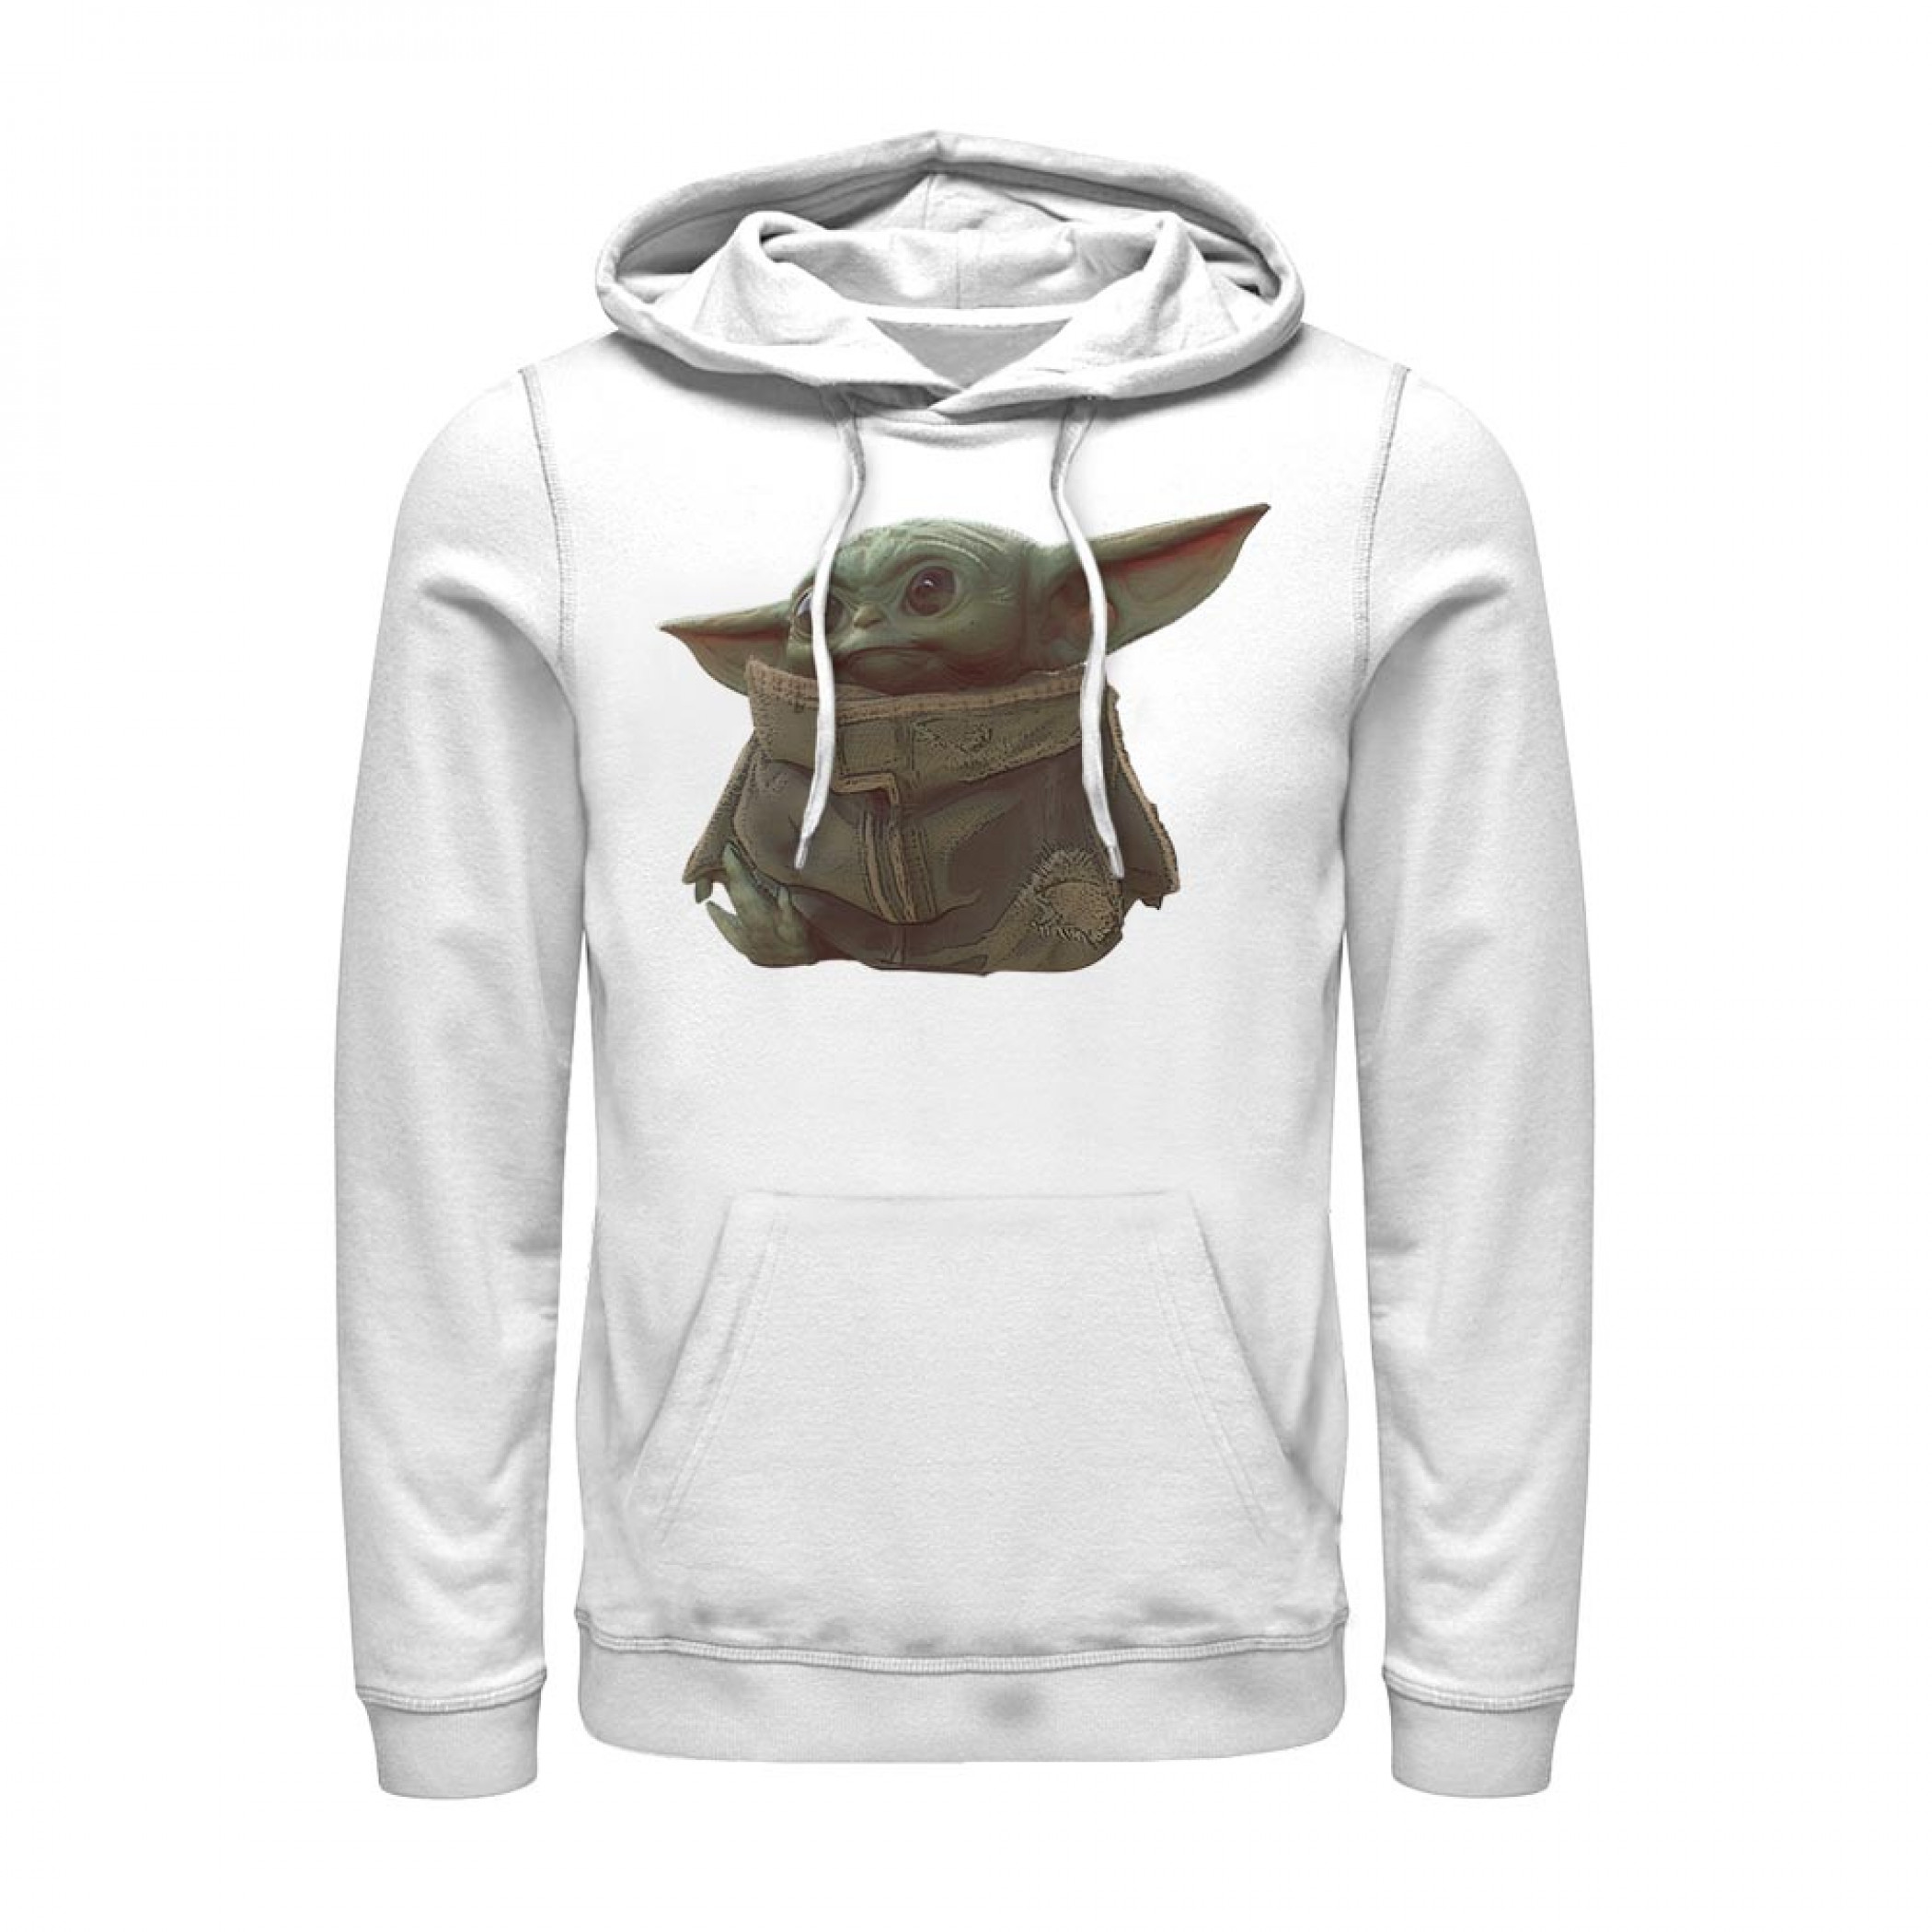 Star Wars The Mandalorian The Child Portrait Hoodie